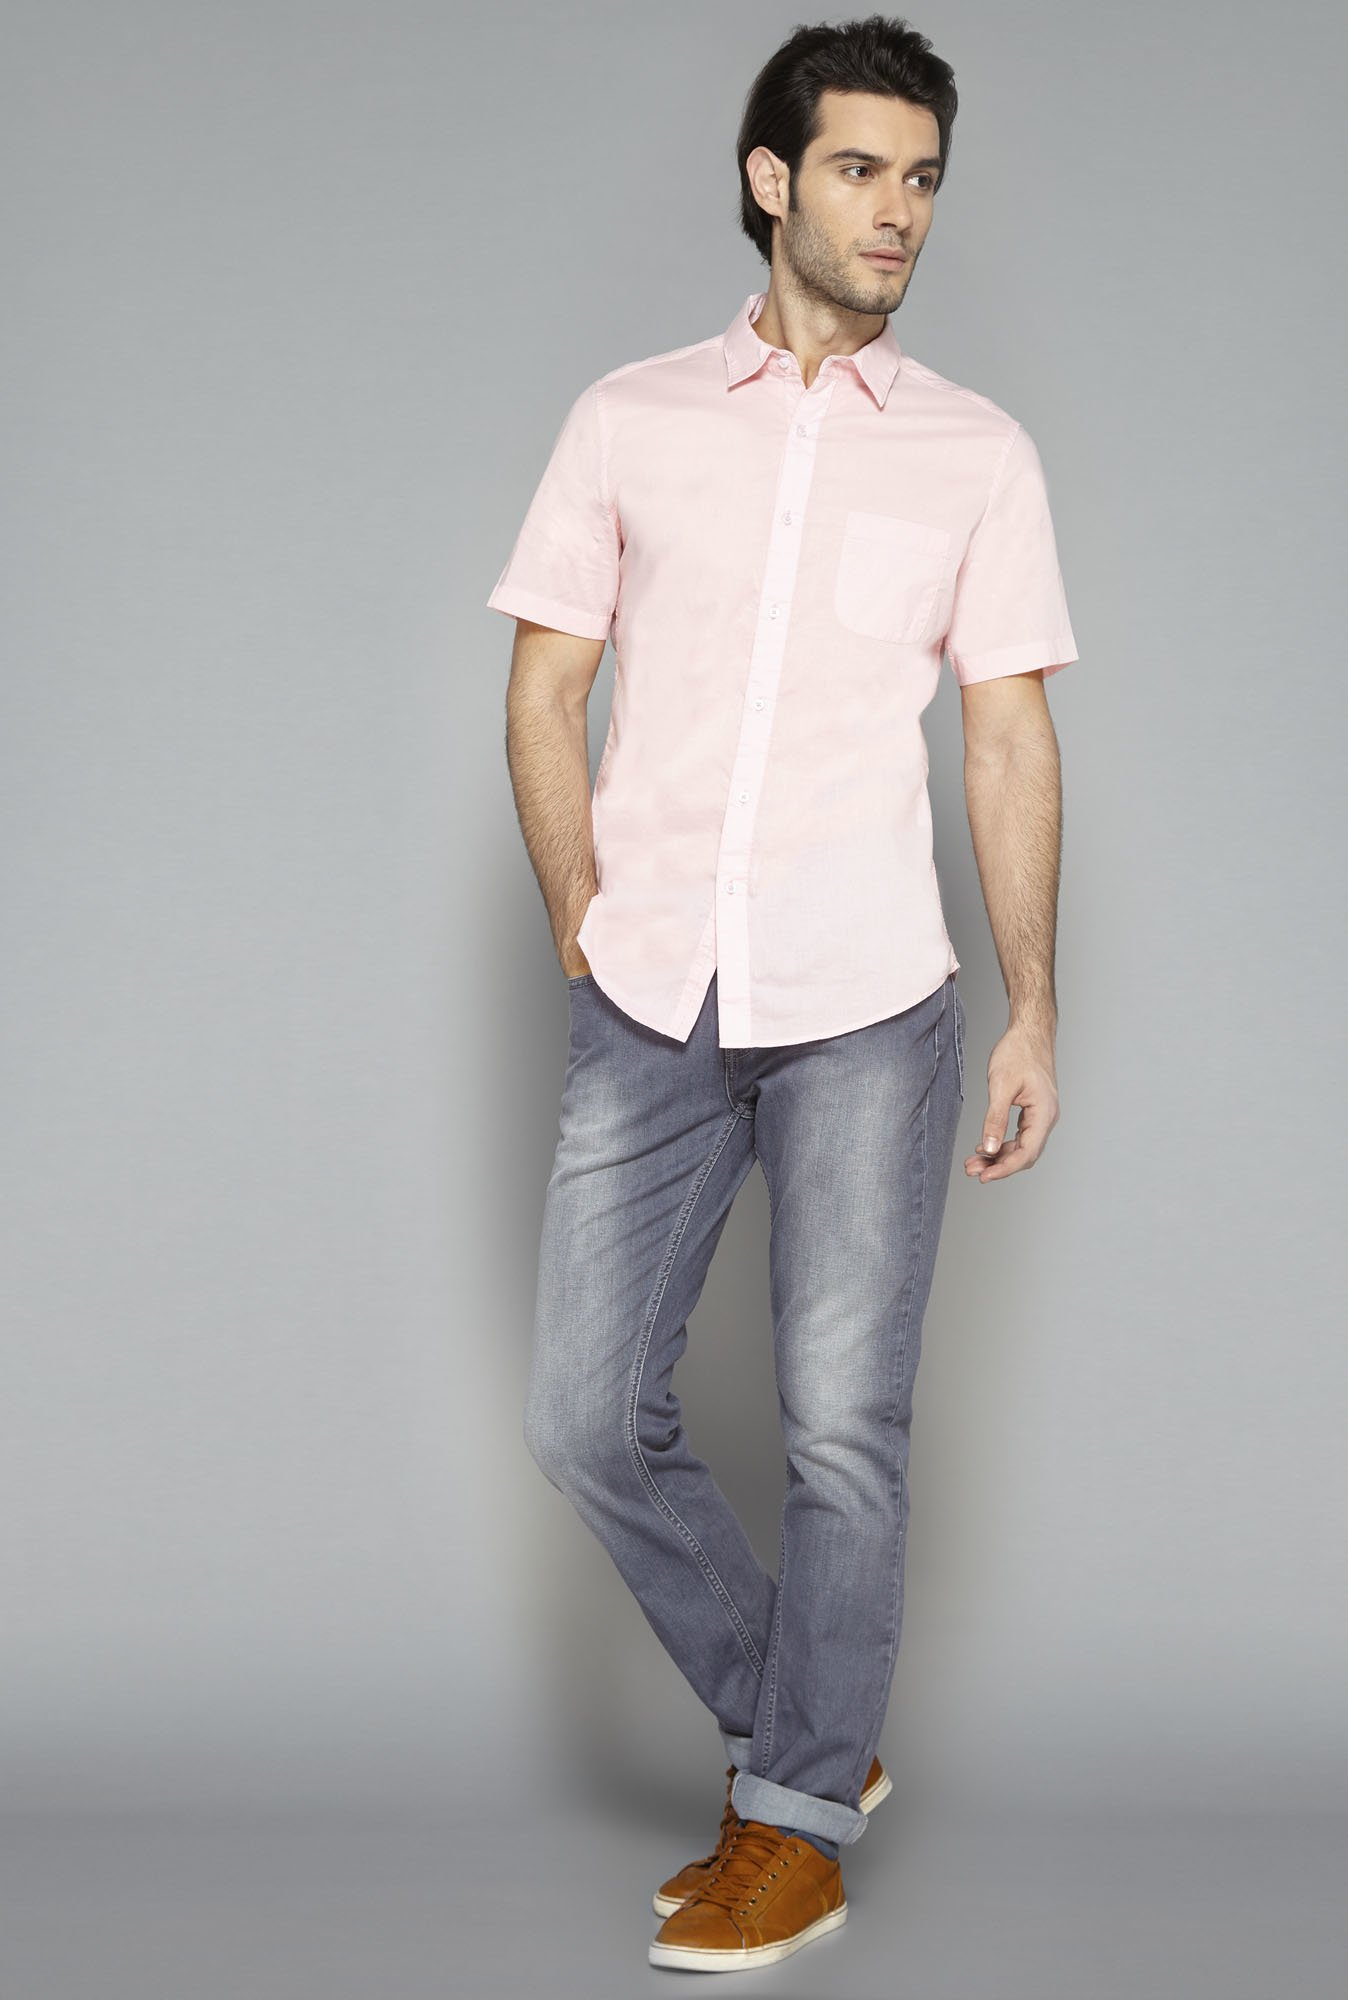 Westsport Mens Pink Cotton Casual Shirt